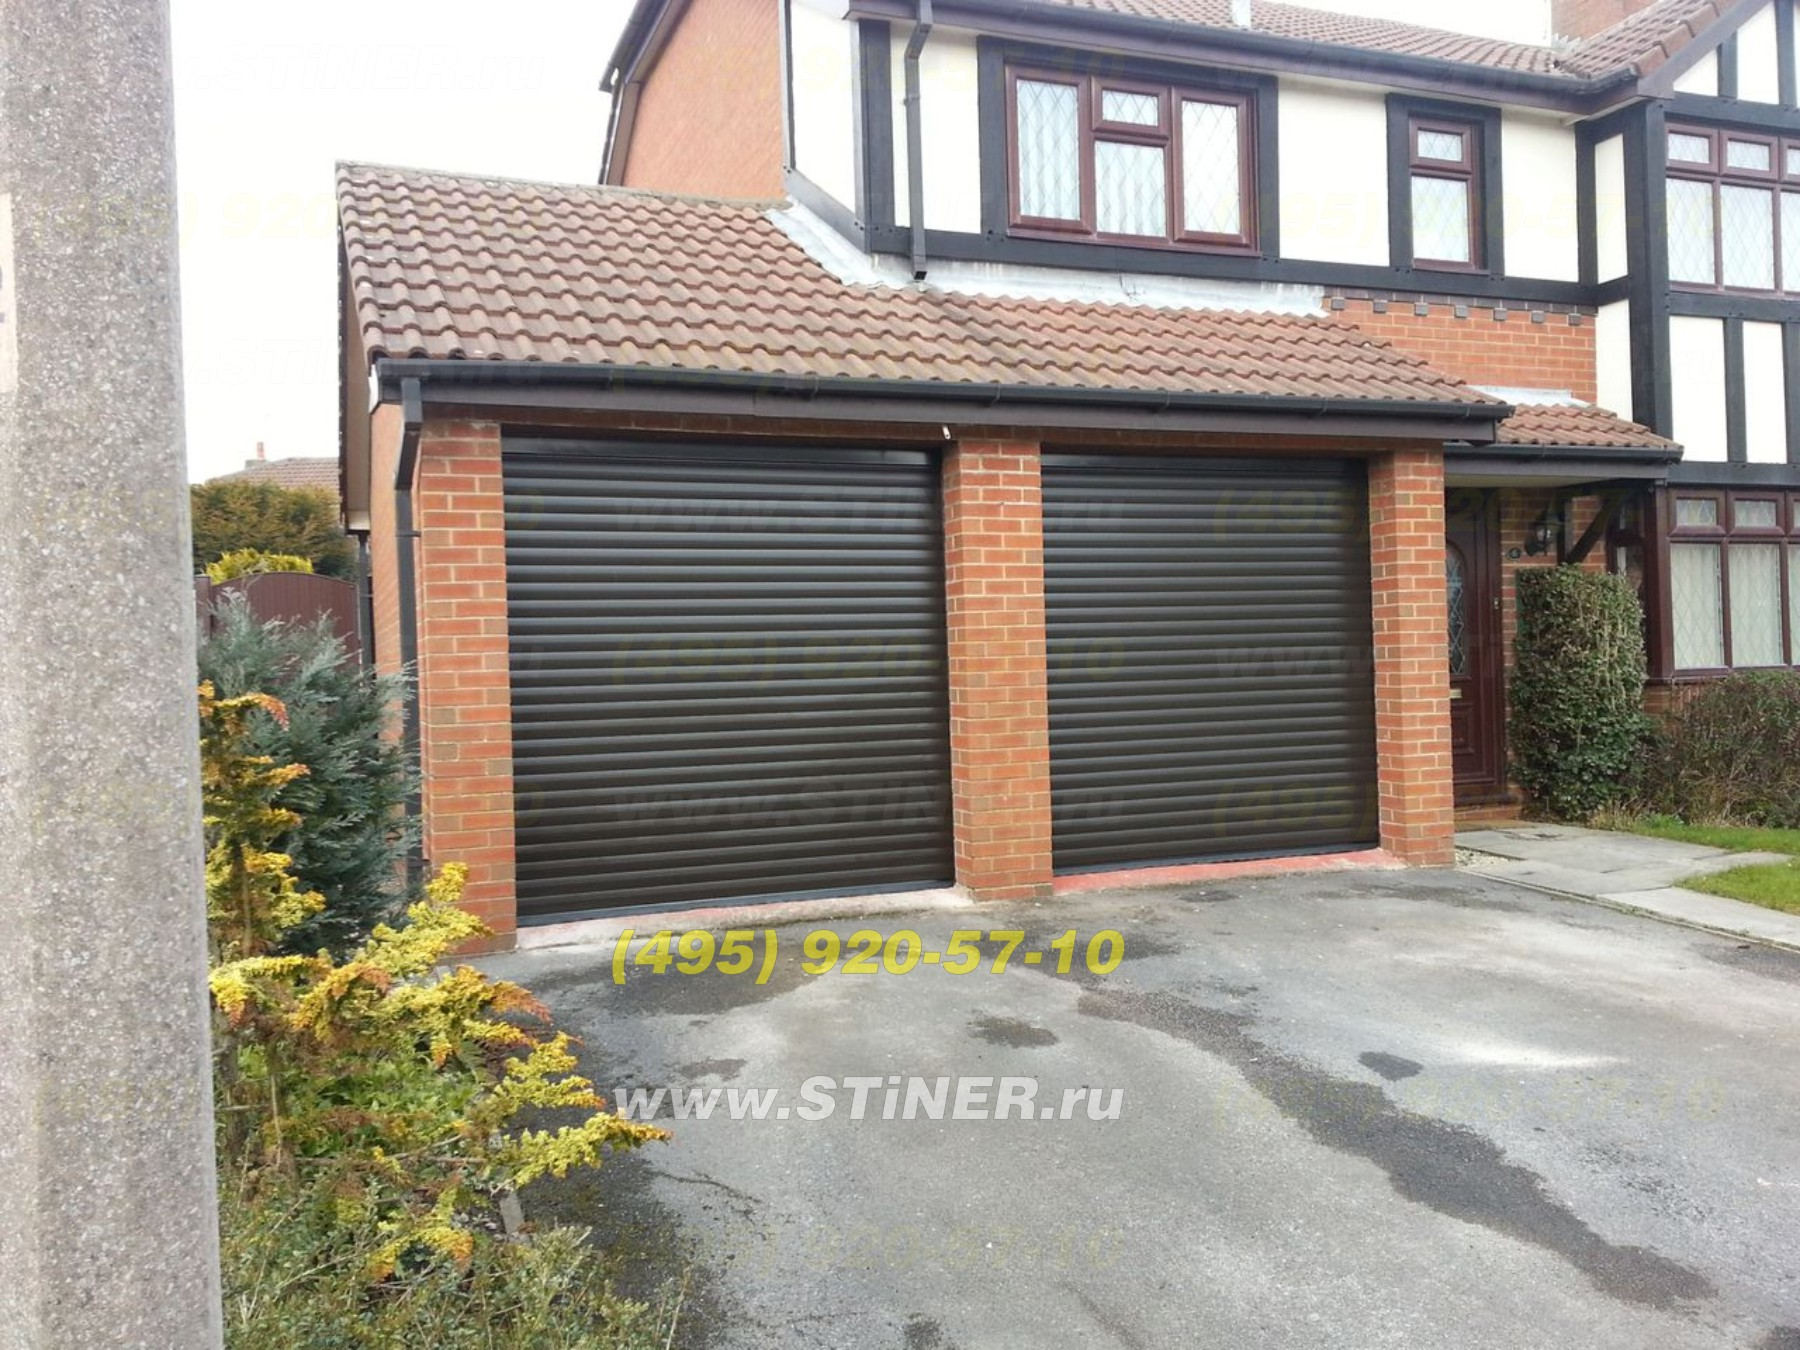 Automatic rollshutters for gates witn installation and with remote control in Moscow region